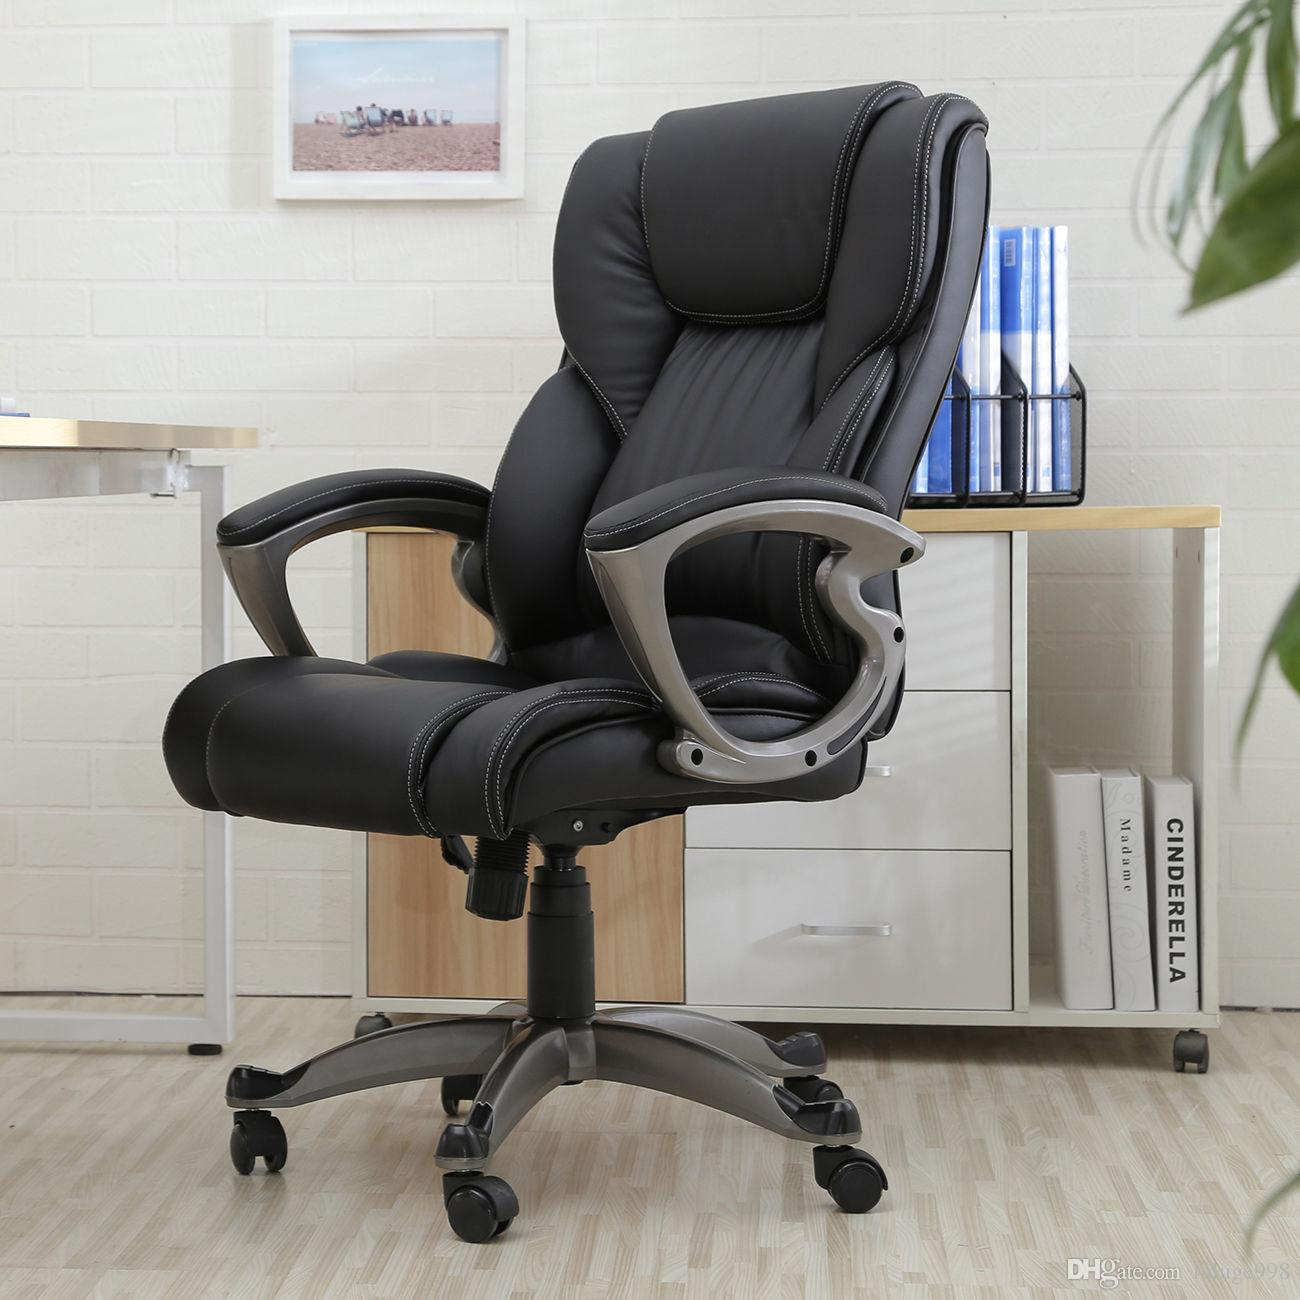 Black Pu Leather High Back Office Chair Executive Task Ergonomic Computer Desk With 77 6 Piece On Luluge998 S Dhgate Com